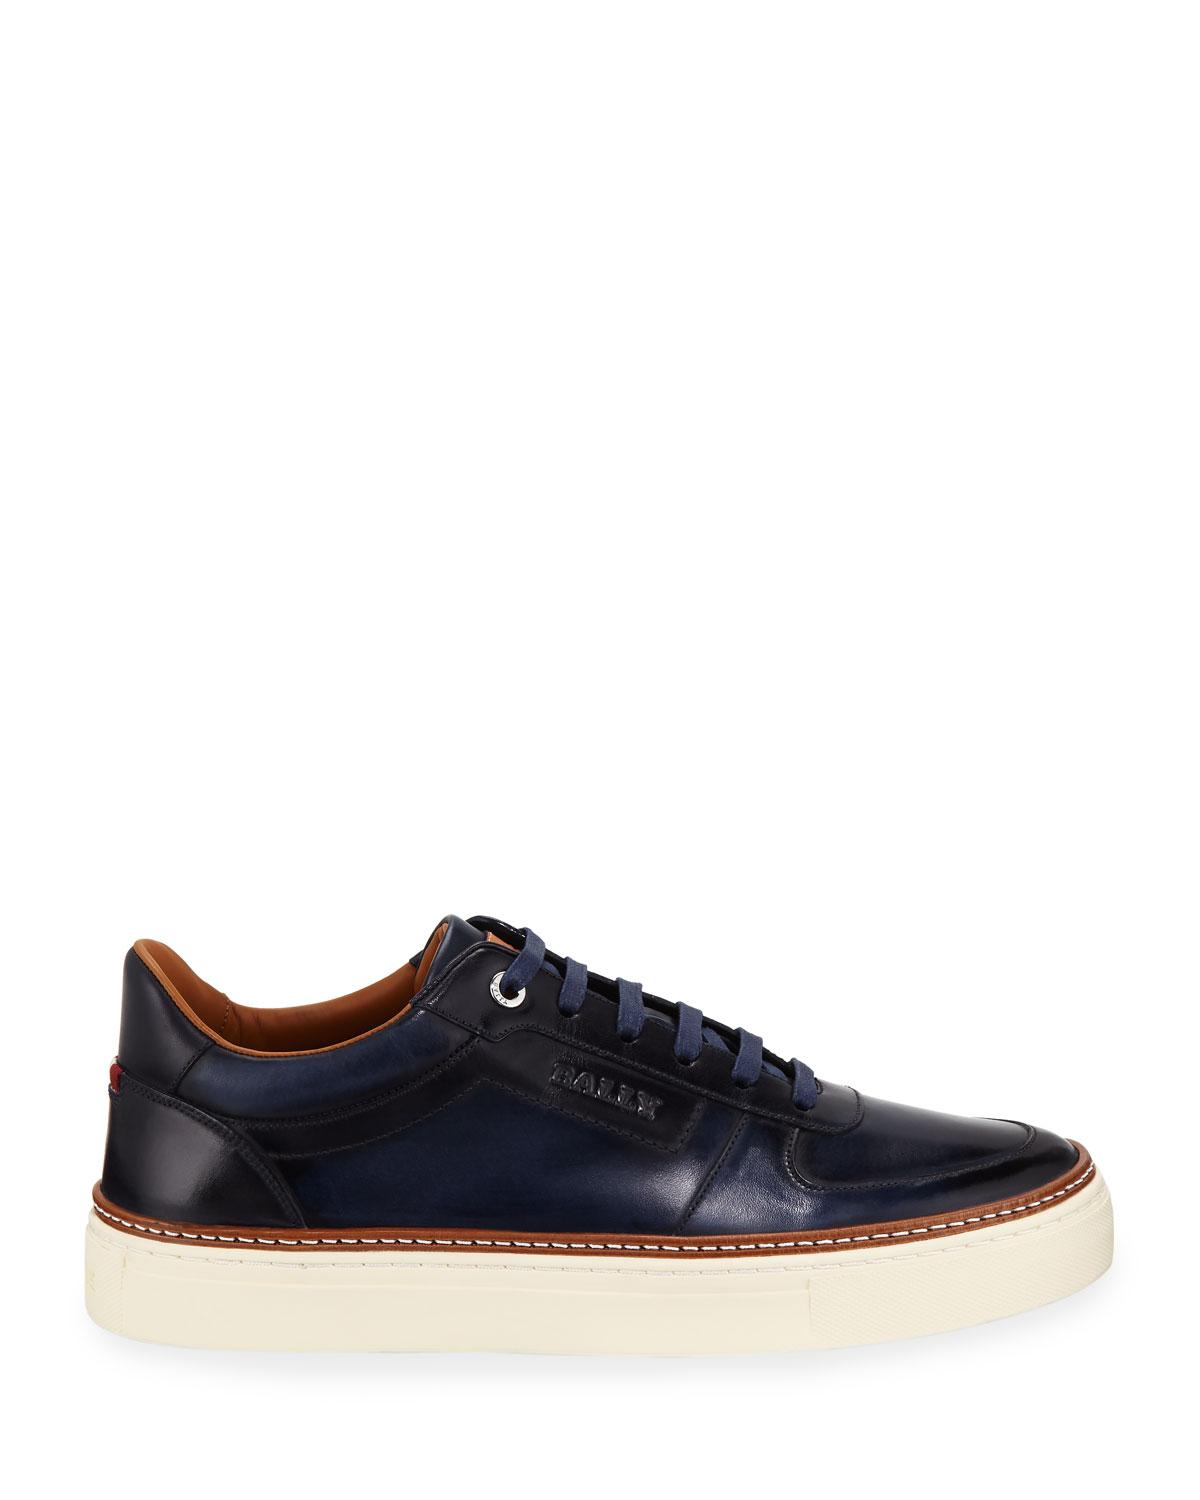 Hens Burnished Leather Sneakers